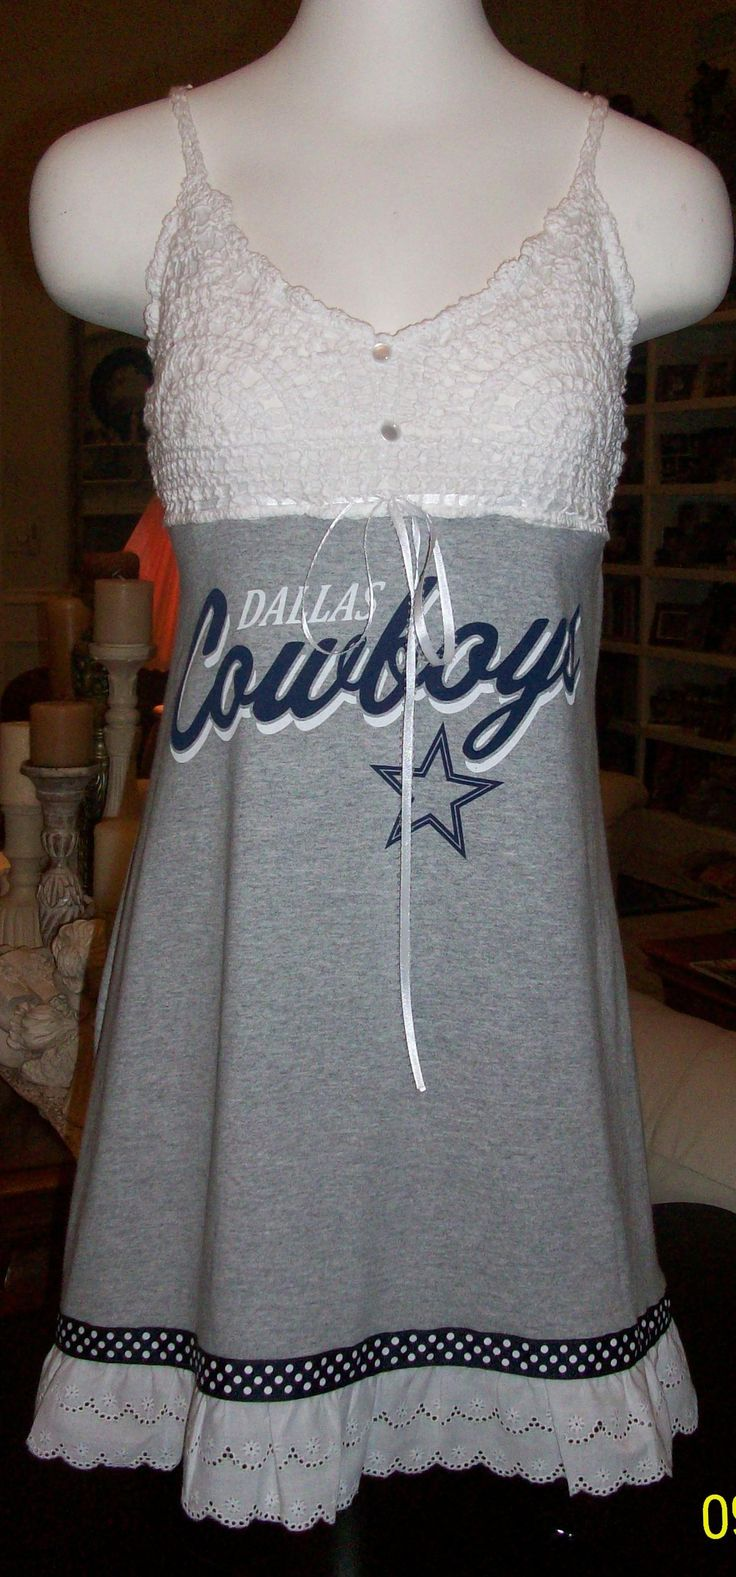 278 best cowboys fan for life images on pinterest cowboy baby dallas cowboys game day tee shirt dress 55 00